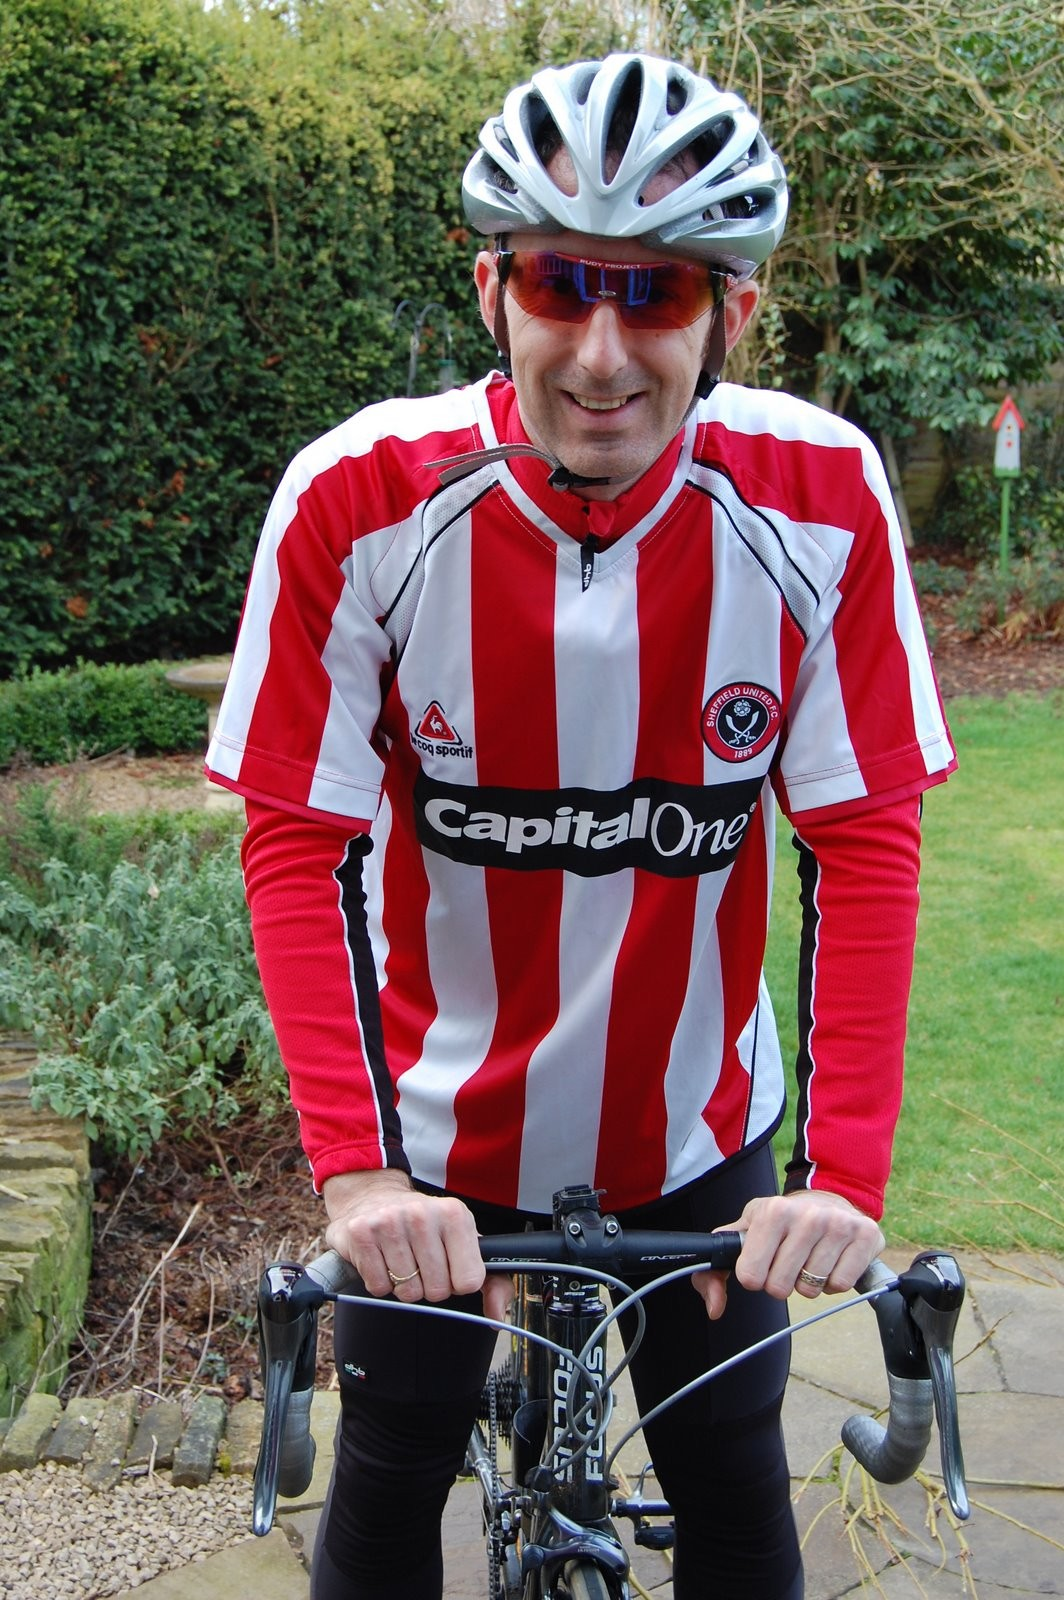 Andy showing his true colours...as a Sheffield Utd supporter!